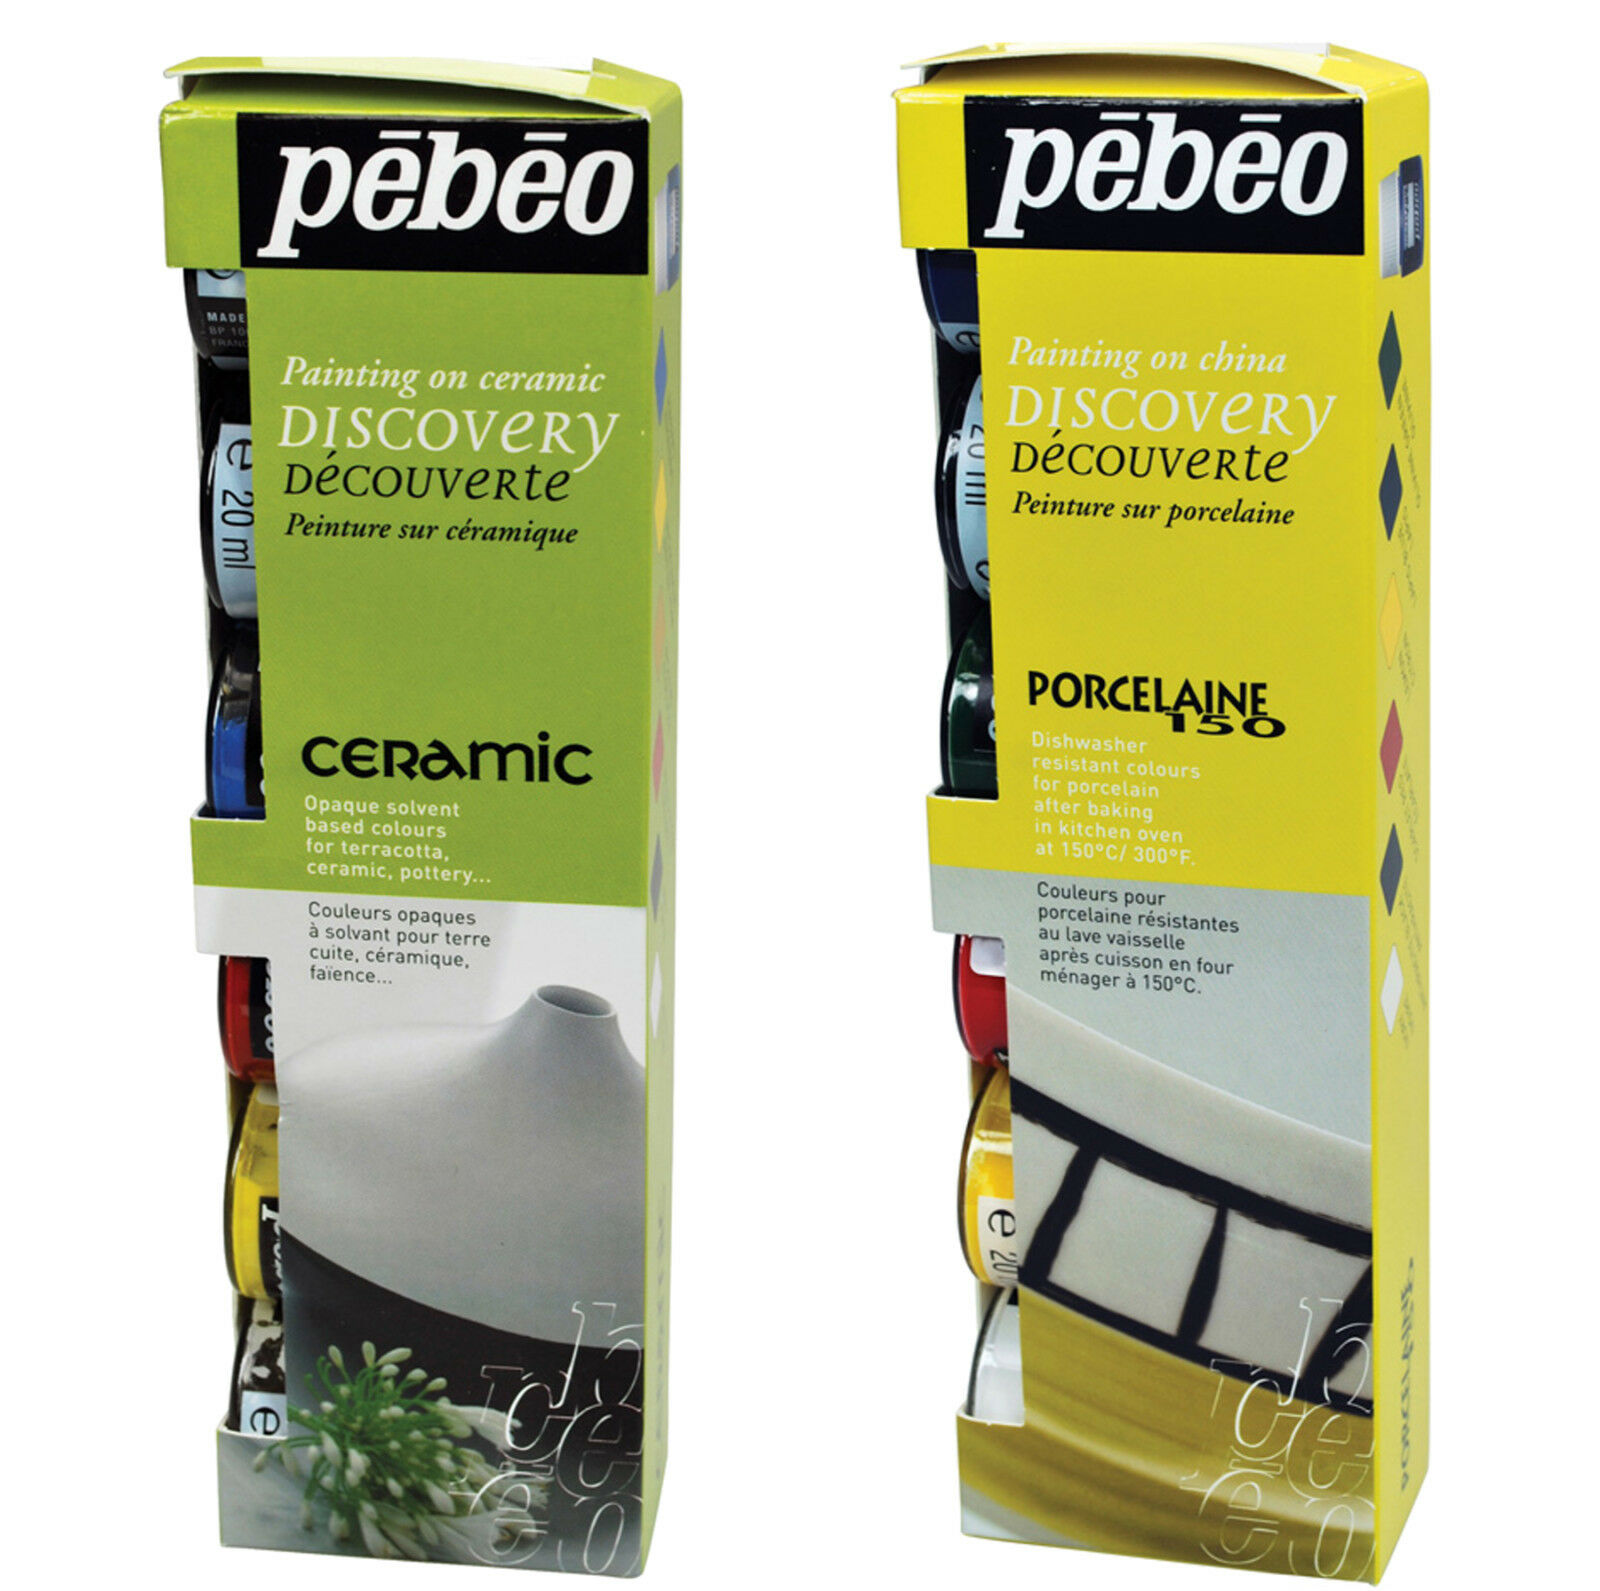 pebeo porcelaine 150 & ceramic paint discovery sets painting on